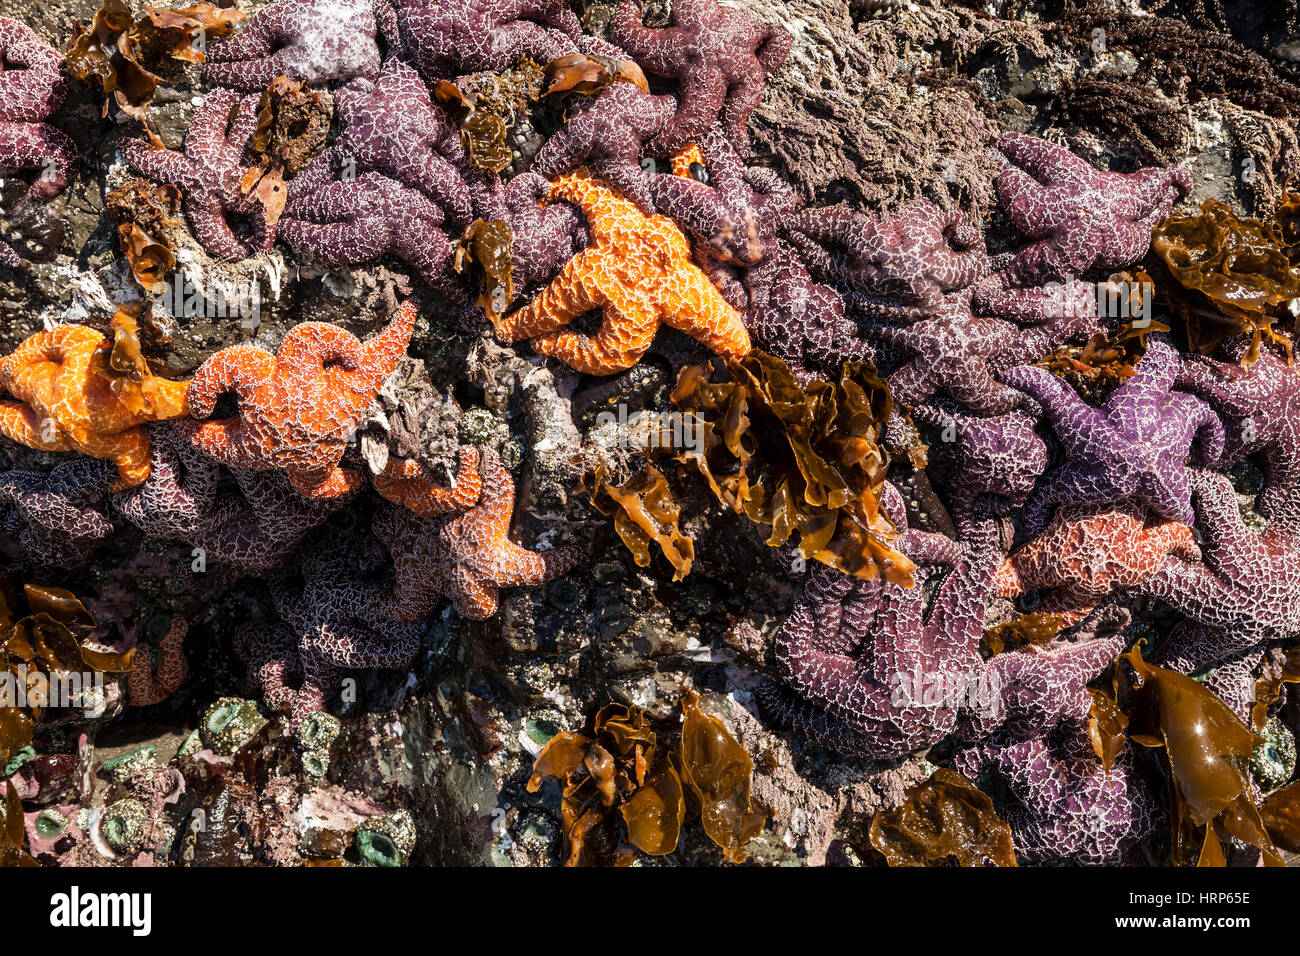 A rock covered with sea anemones and sea stars. Some of the sea stars have sea star wasting disease, 2013 2nd Beach - Stock Image